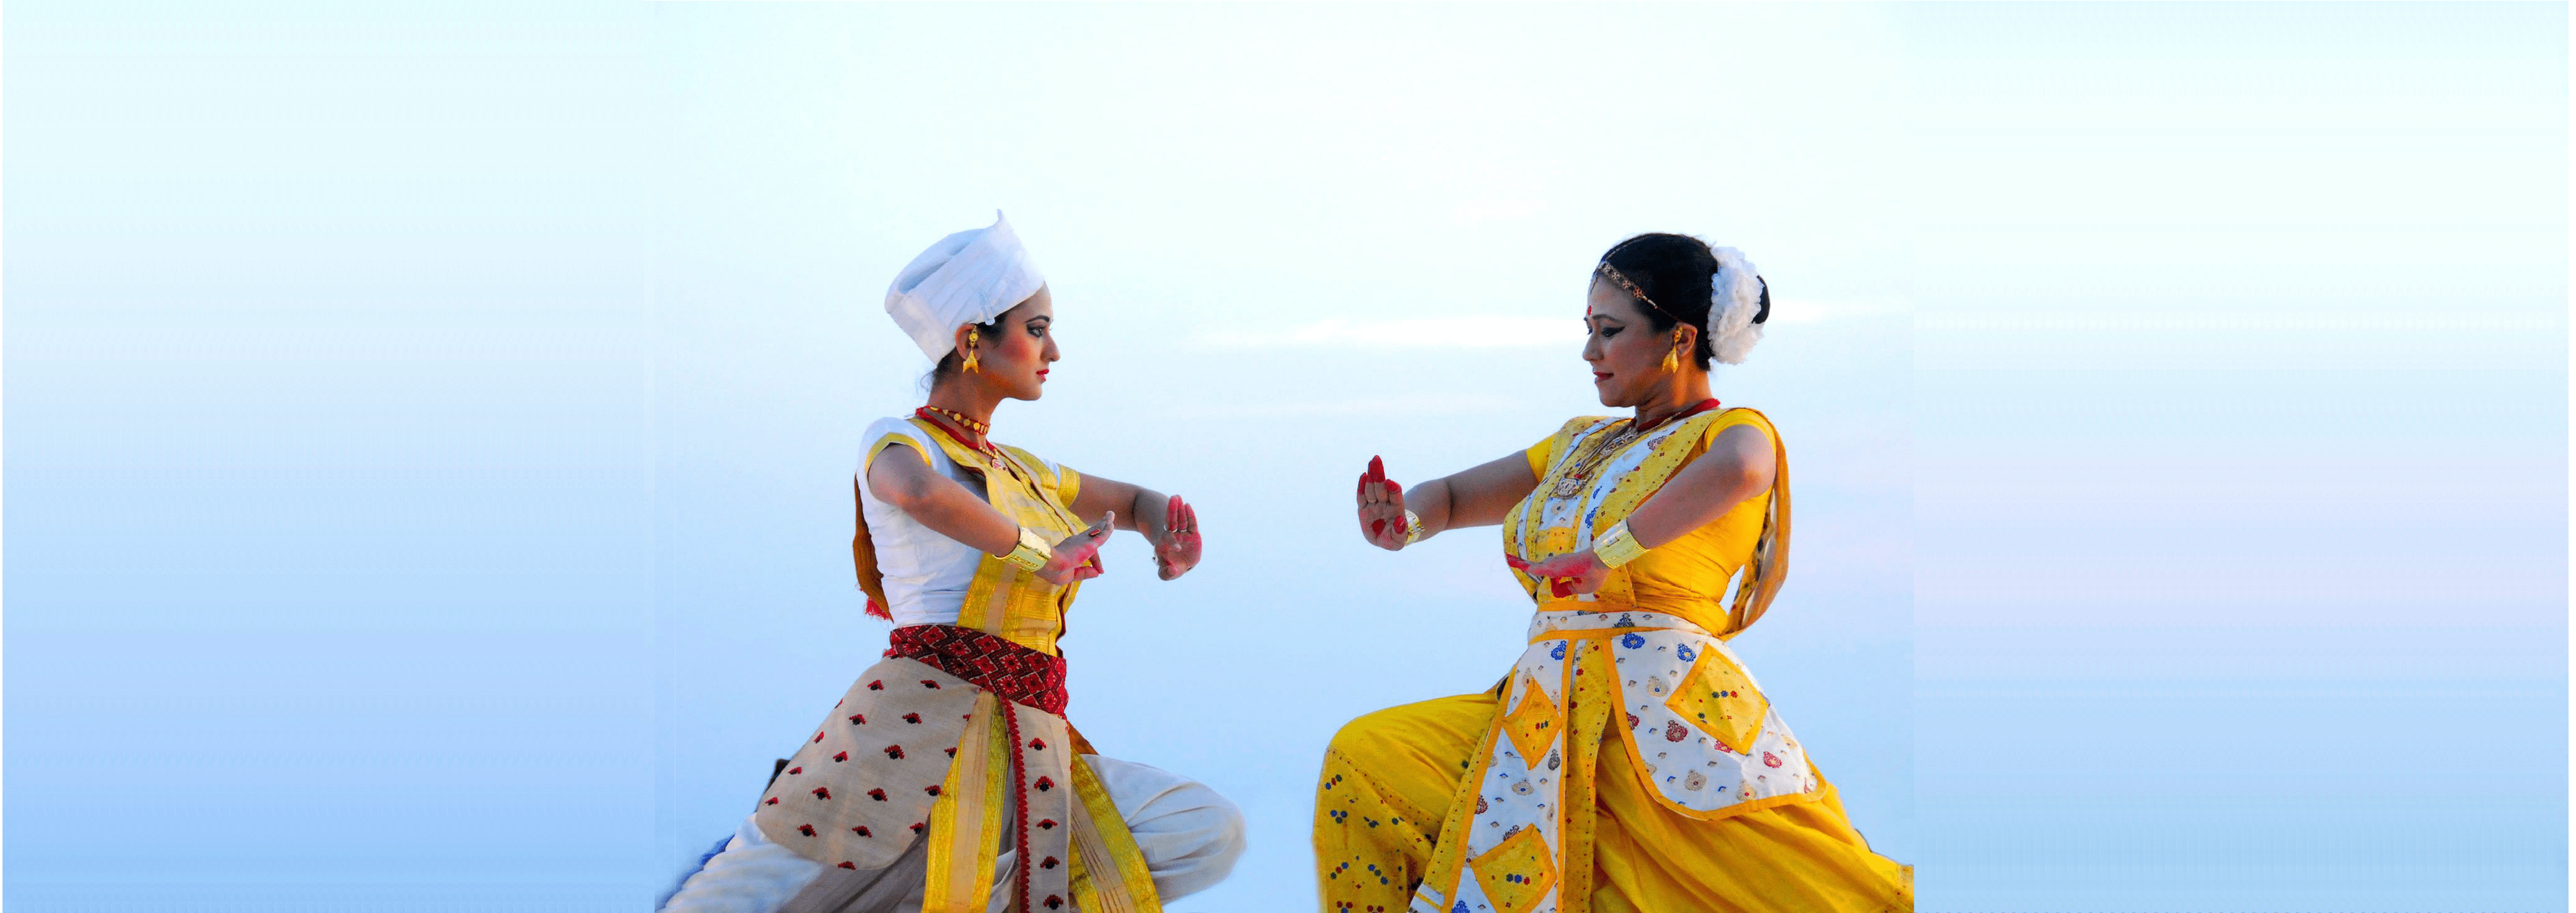 Madhusmita and Prerona performing Sattriya at Erasing Borders Dance Festival in New York